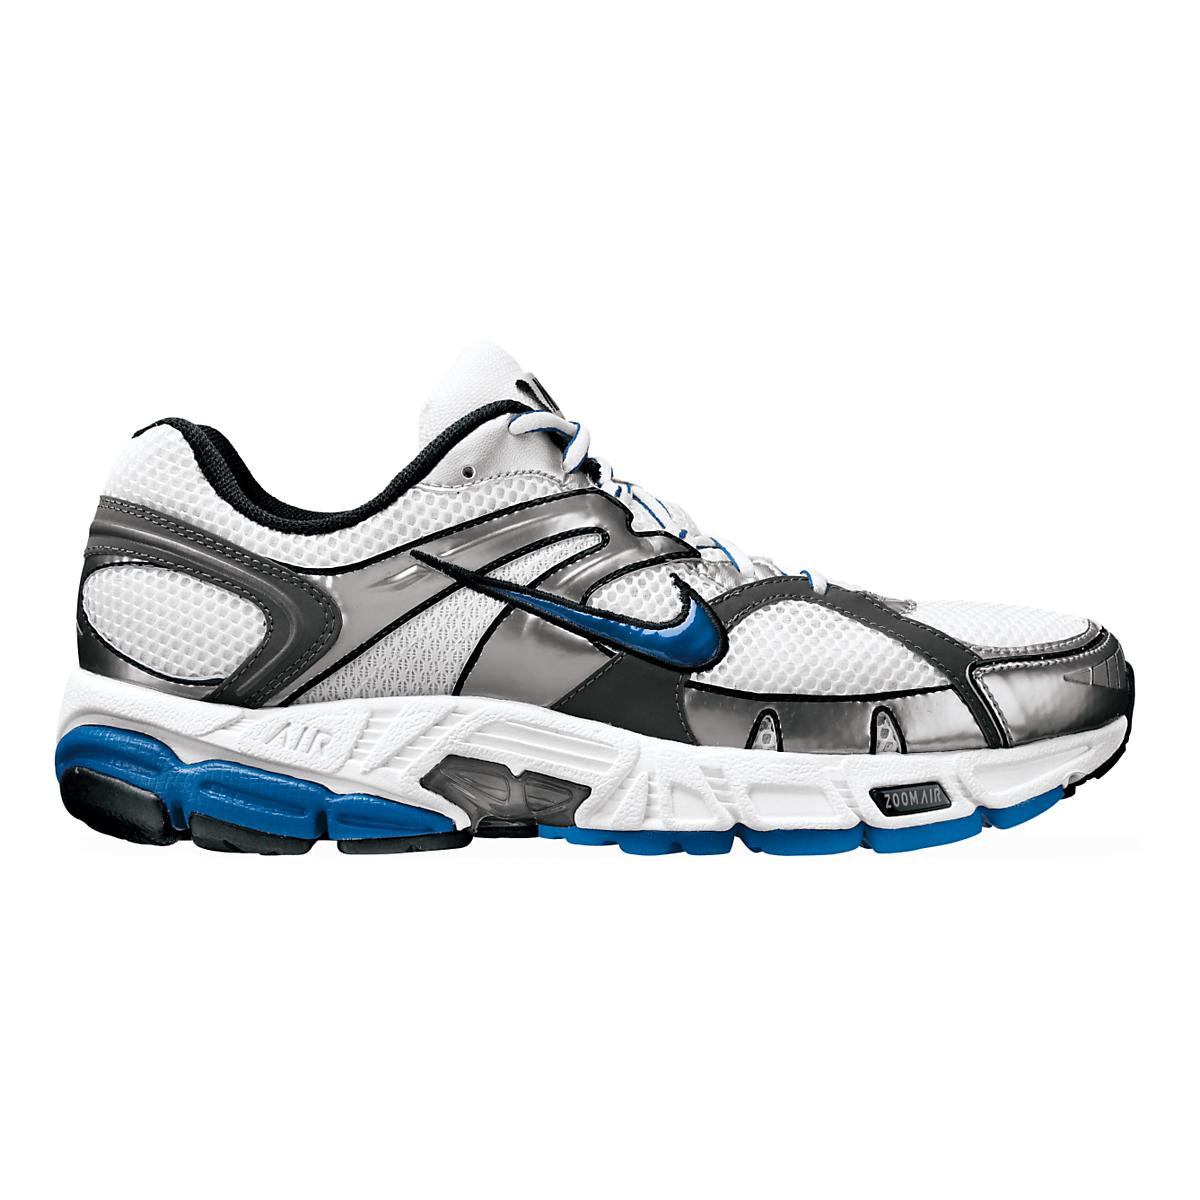 8abccdad98d Mens Nike Zoom Nucleus MC+ Running Shoe at Road Runner Sports